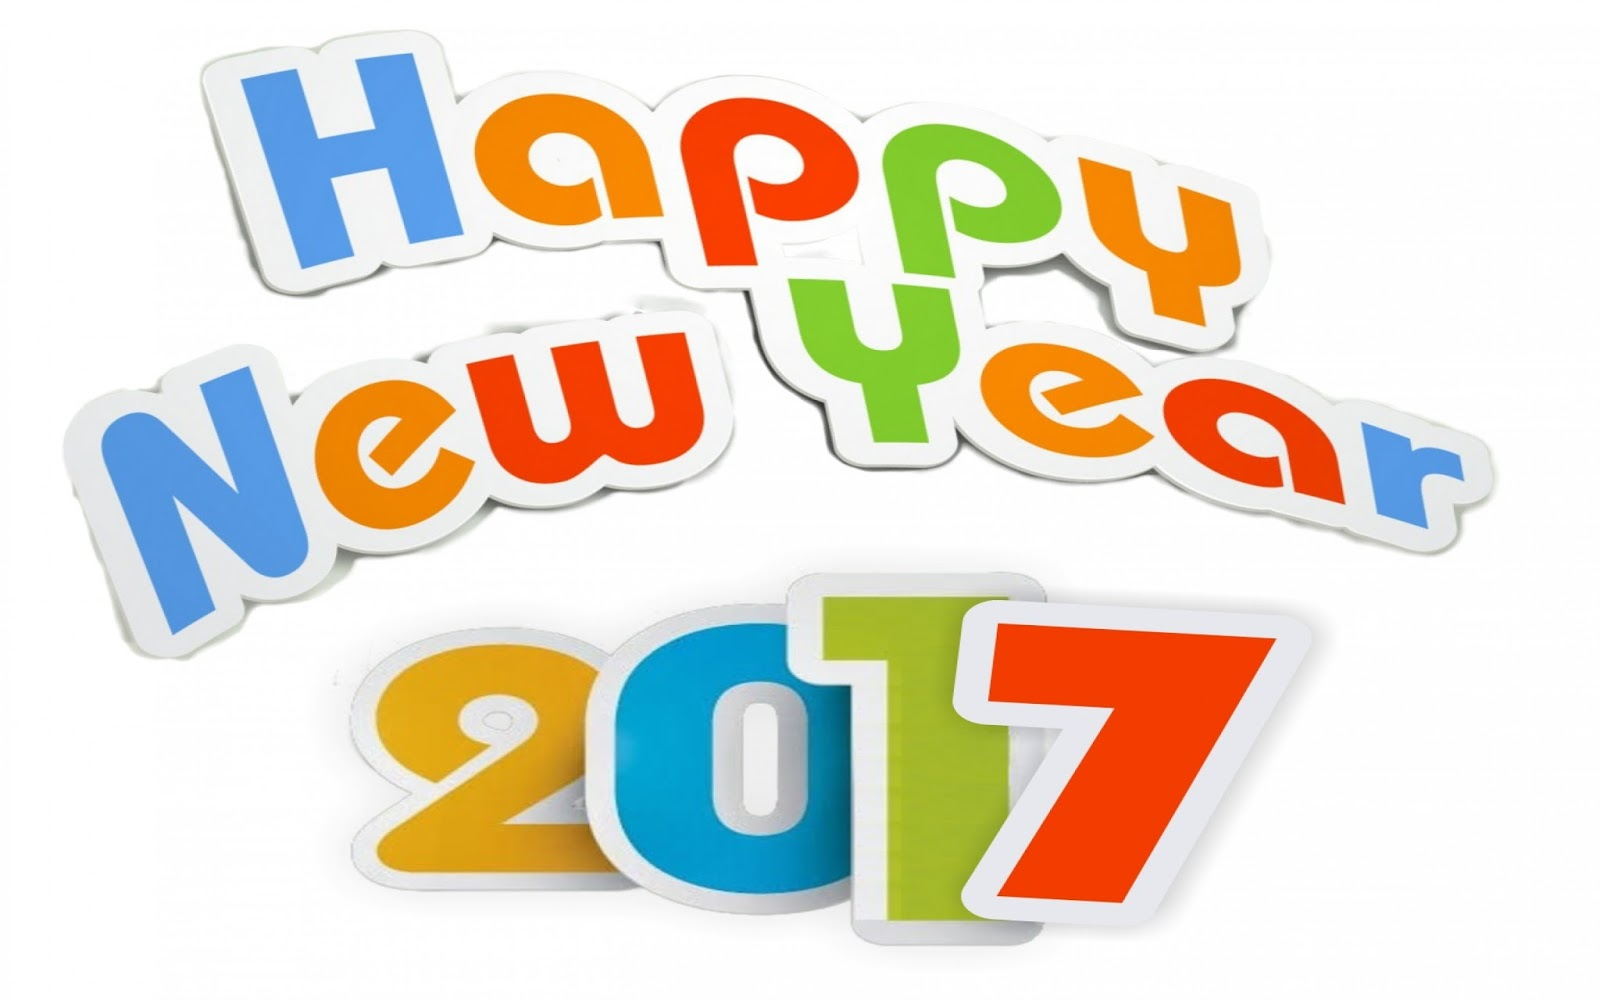 Years free clipart 2017. Happy new year download